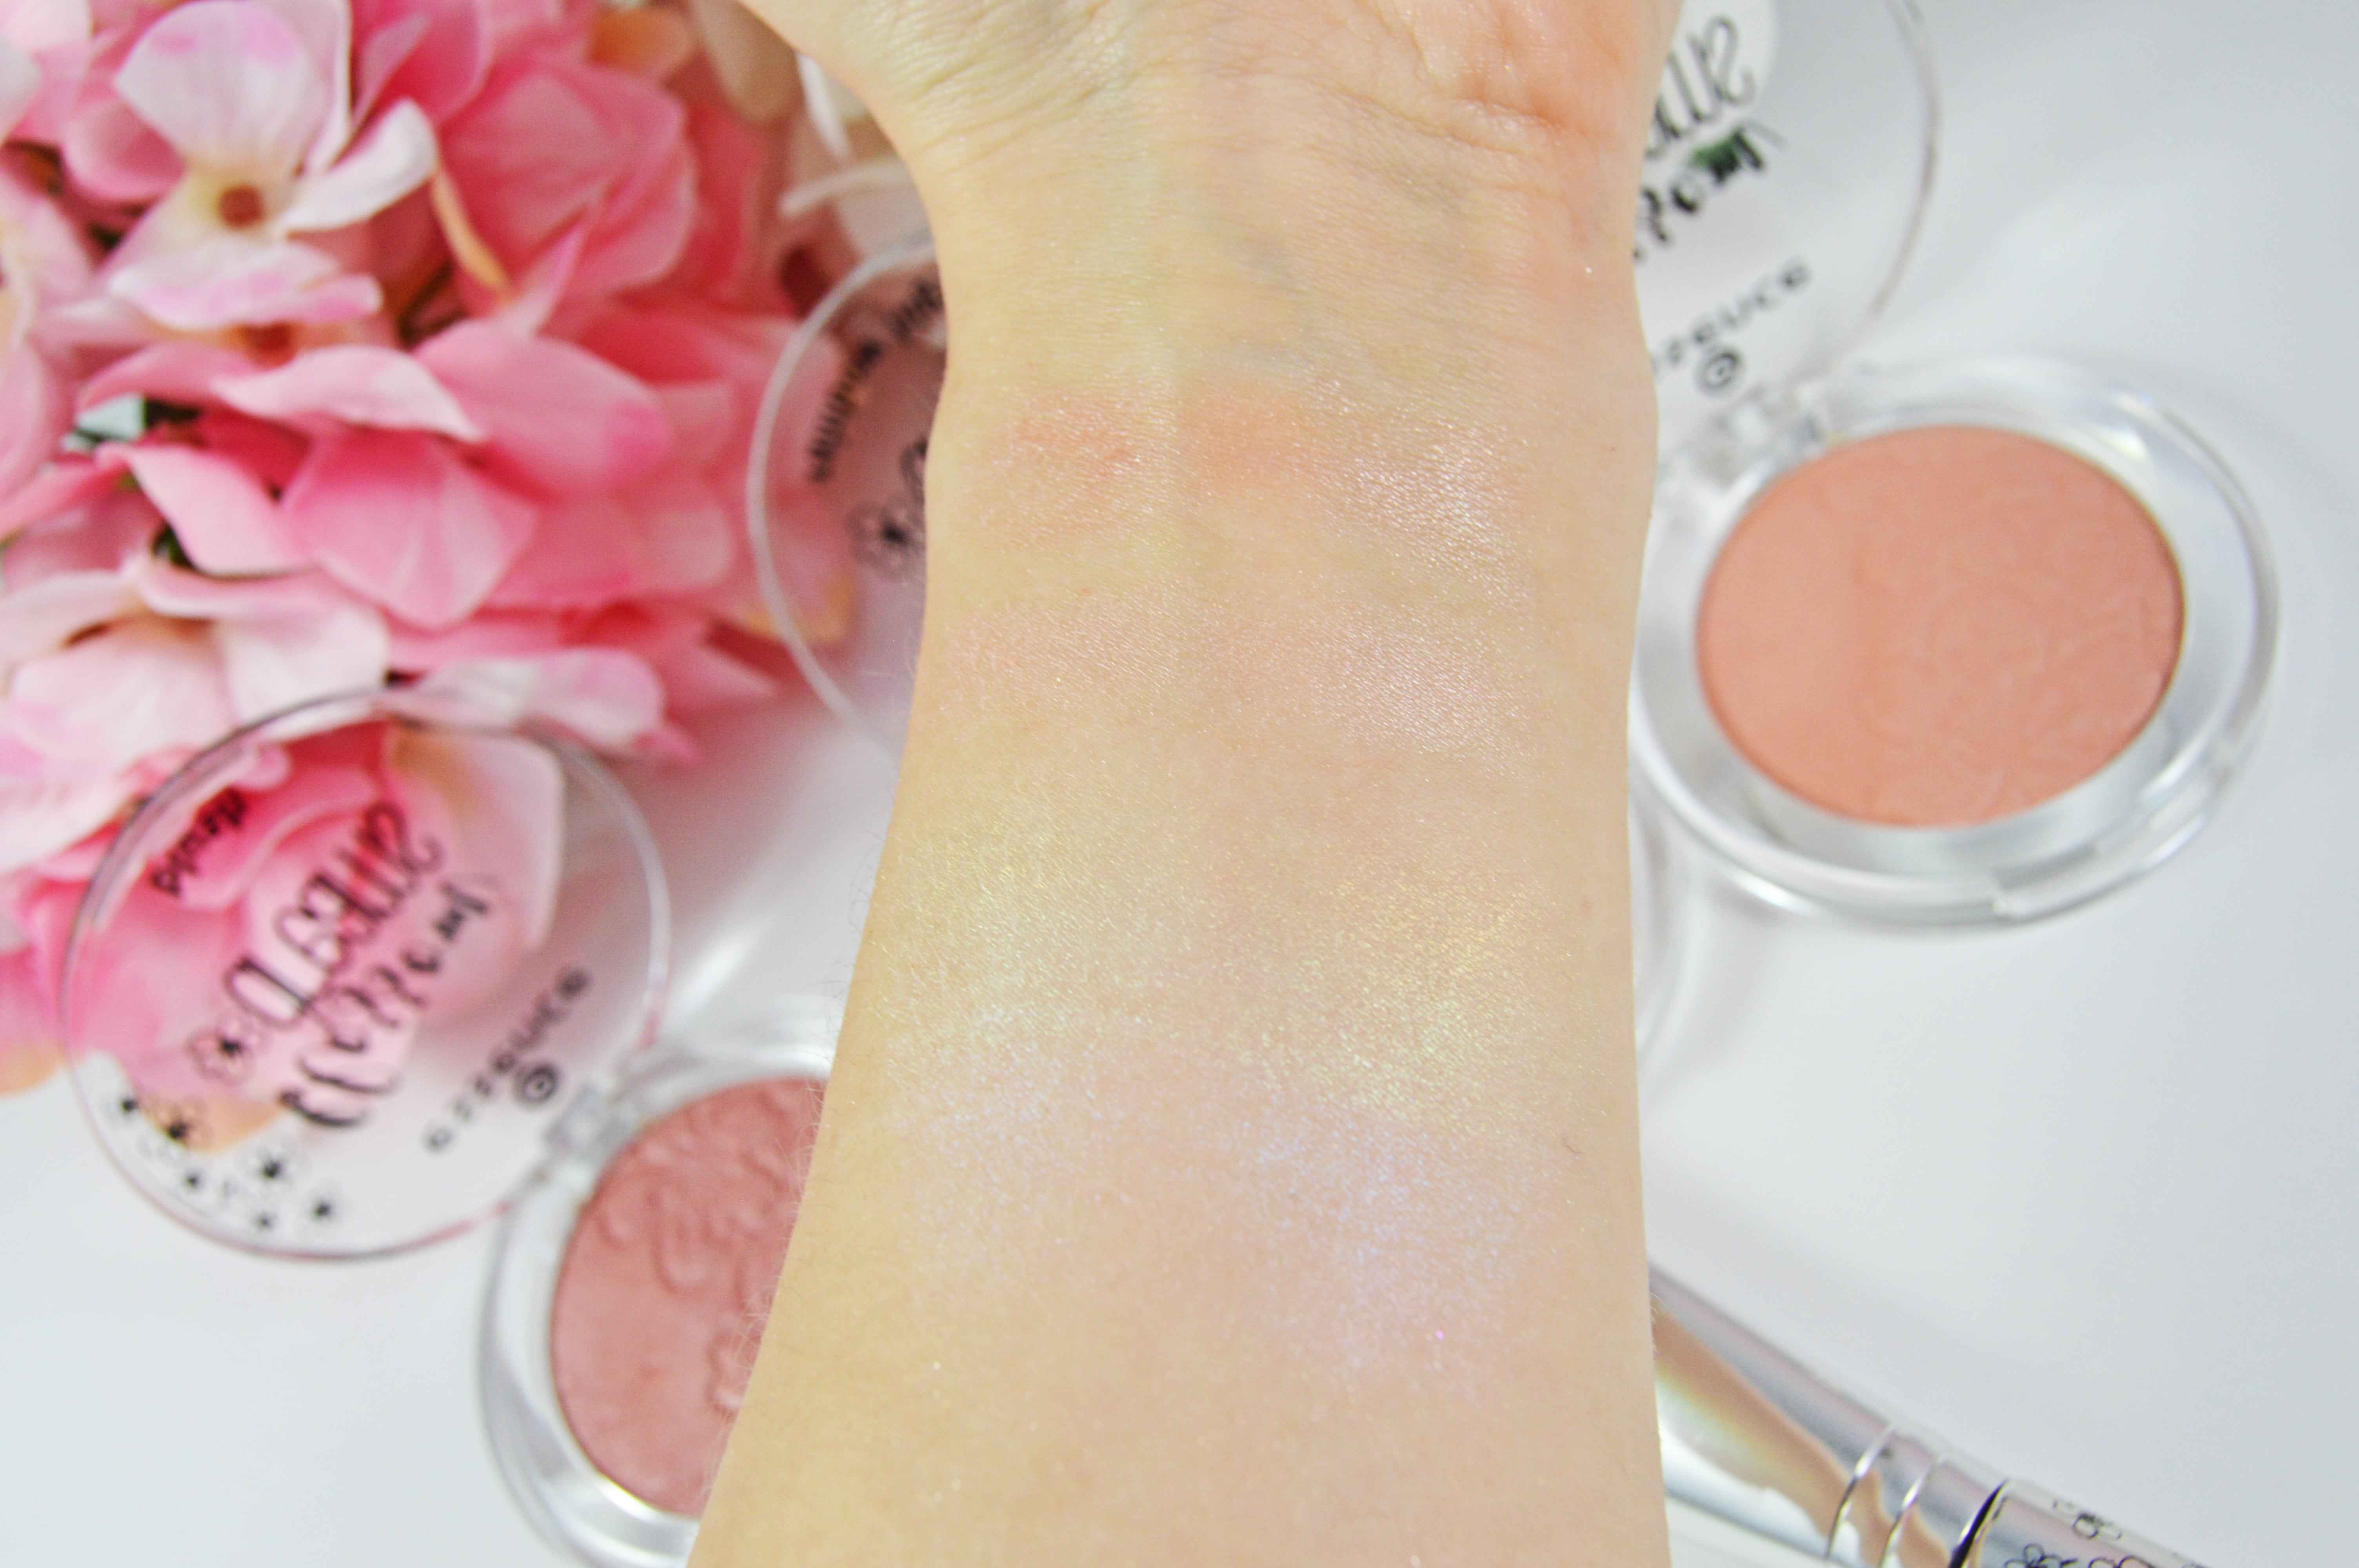 Essence blossom dreams swatches highlighter blushes